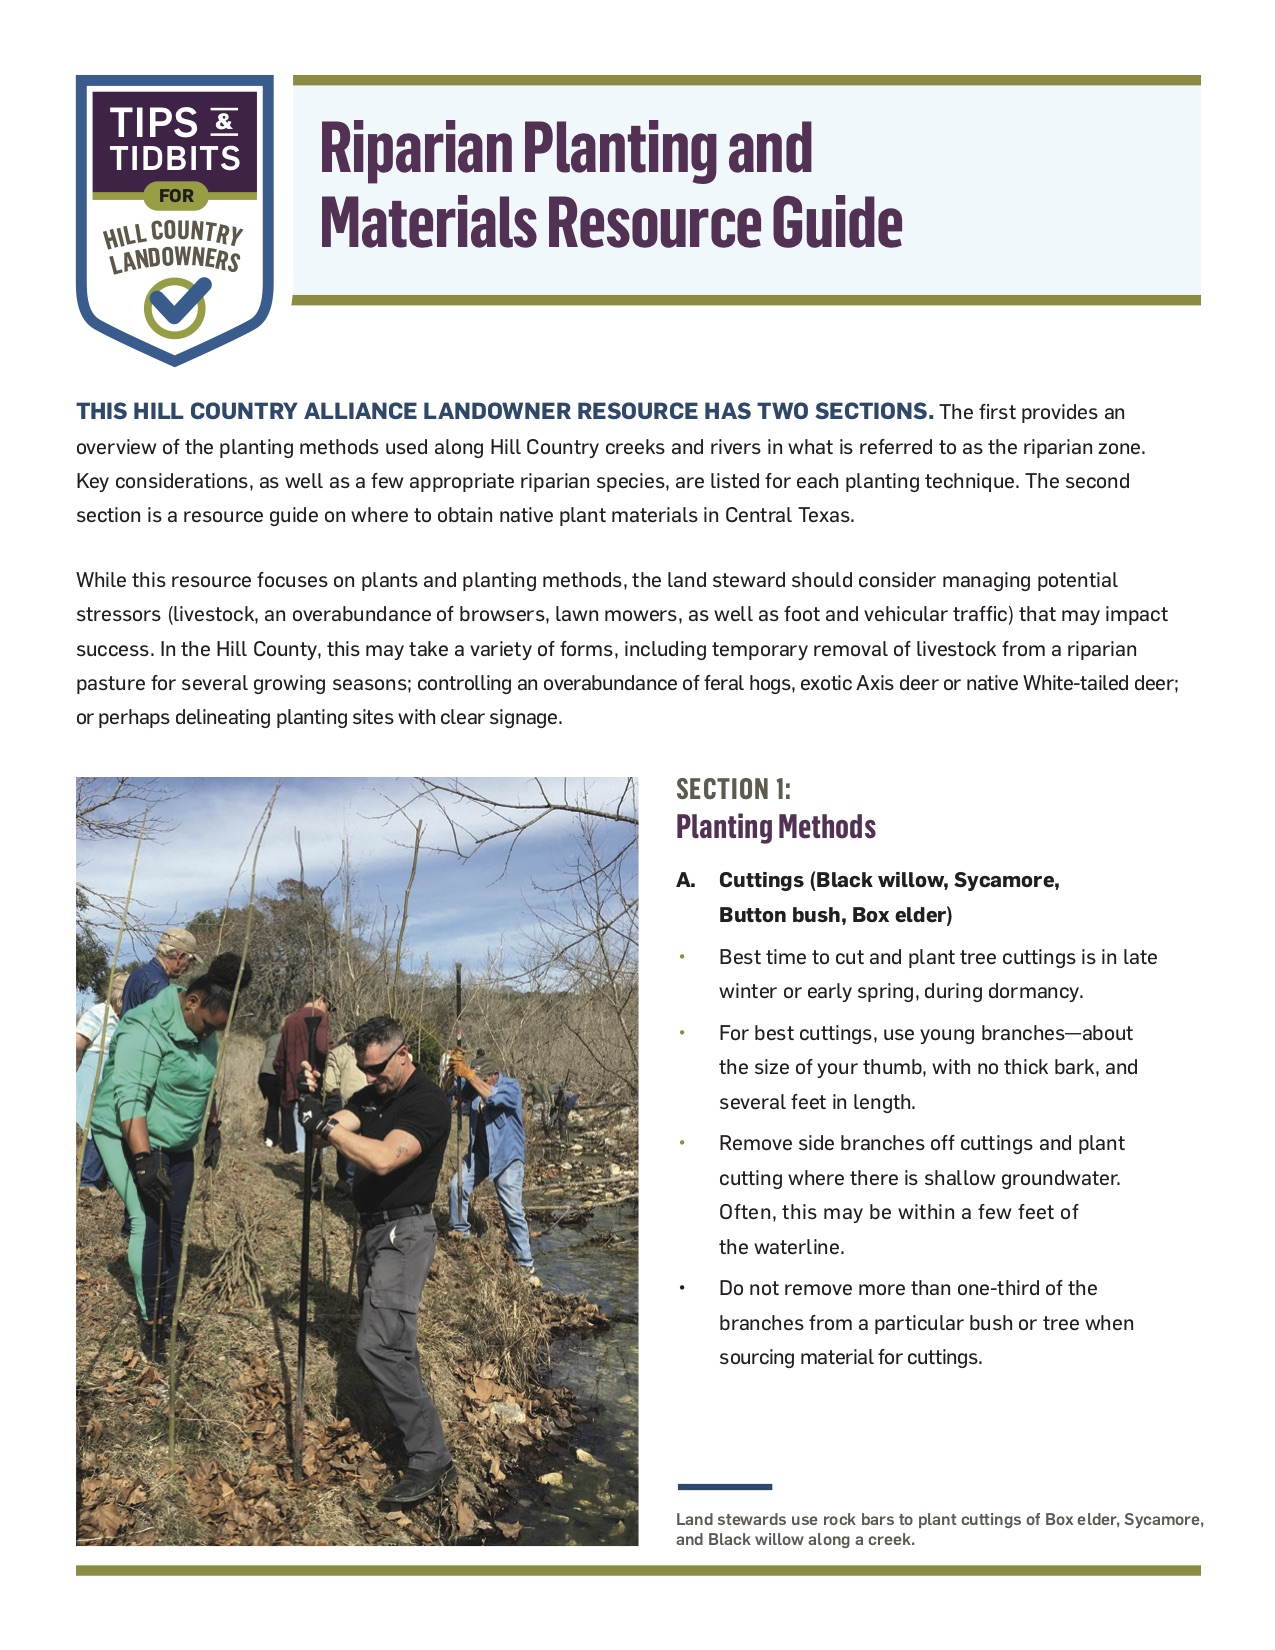 """Cover for PDF """"Riparian Planting and Materials Resource Guide"""""""